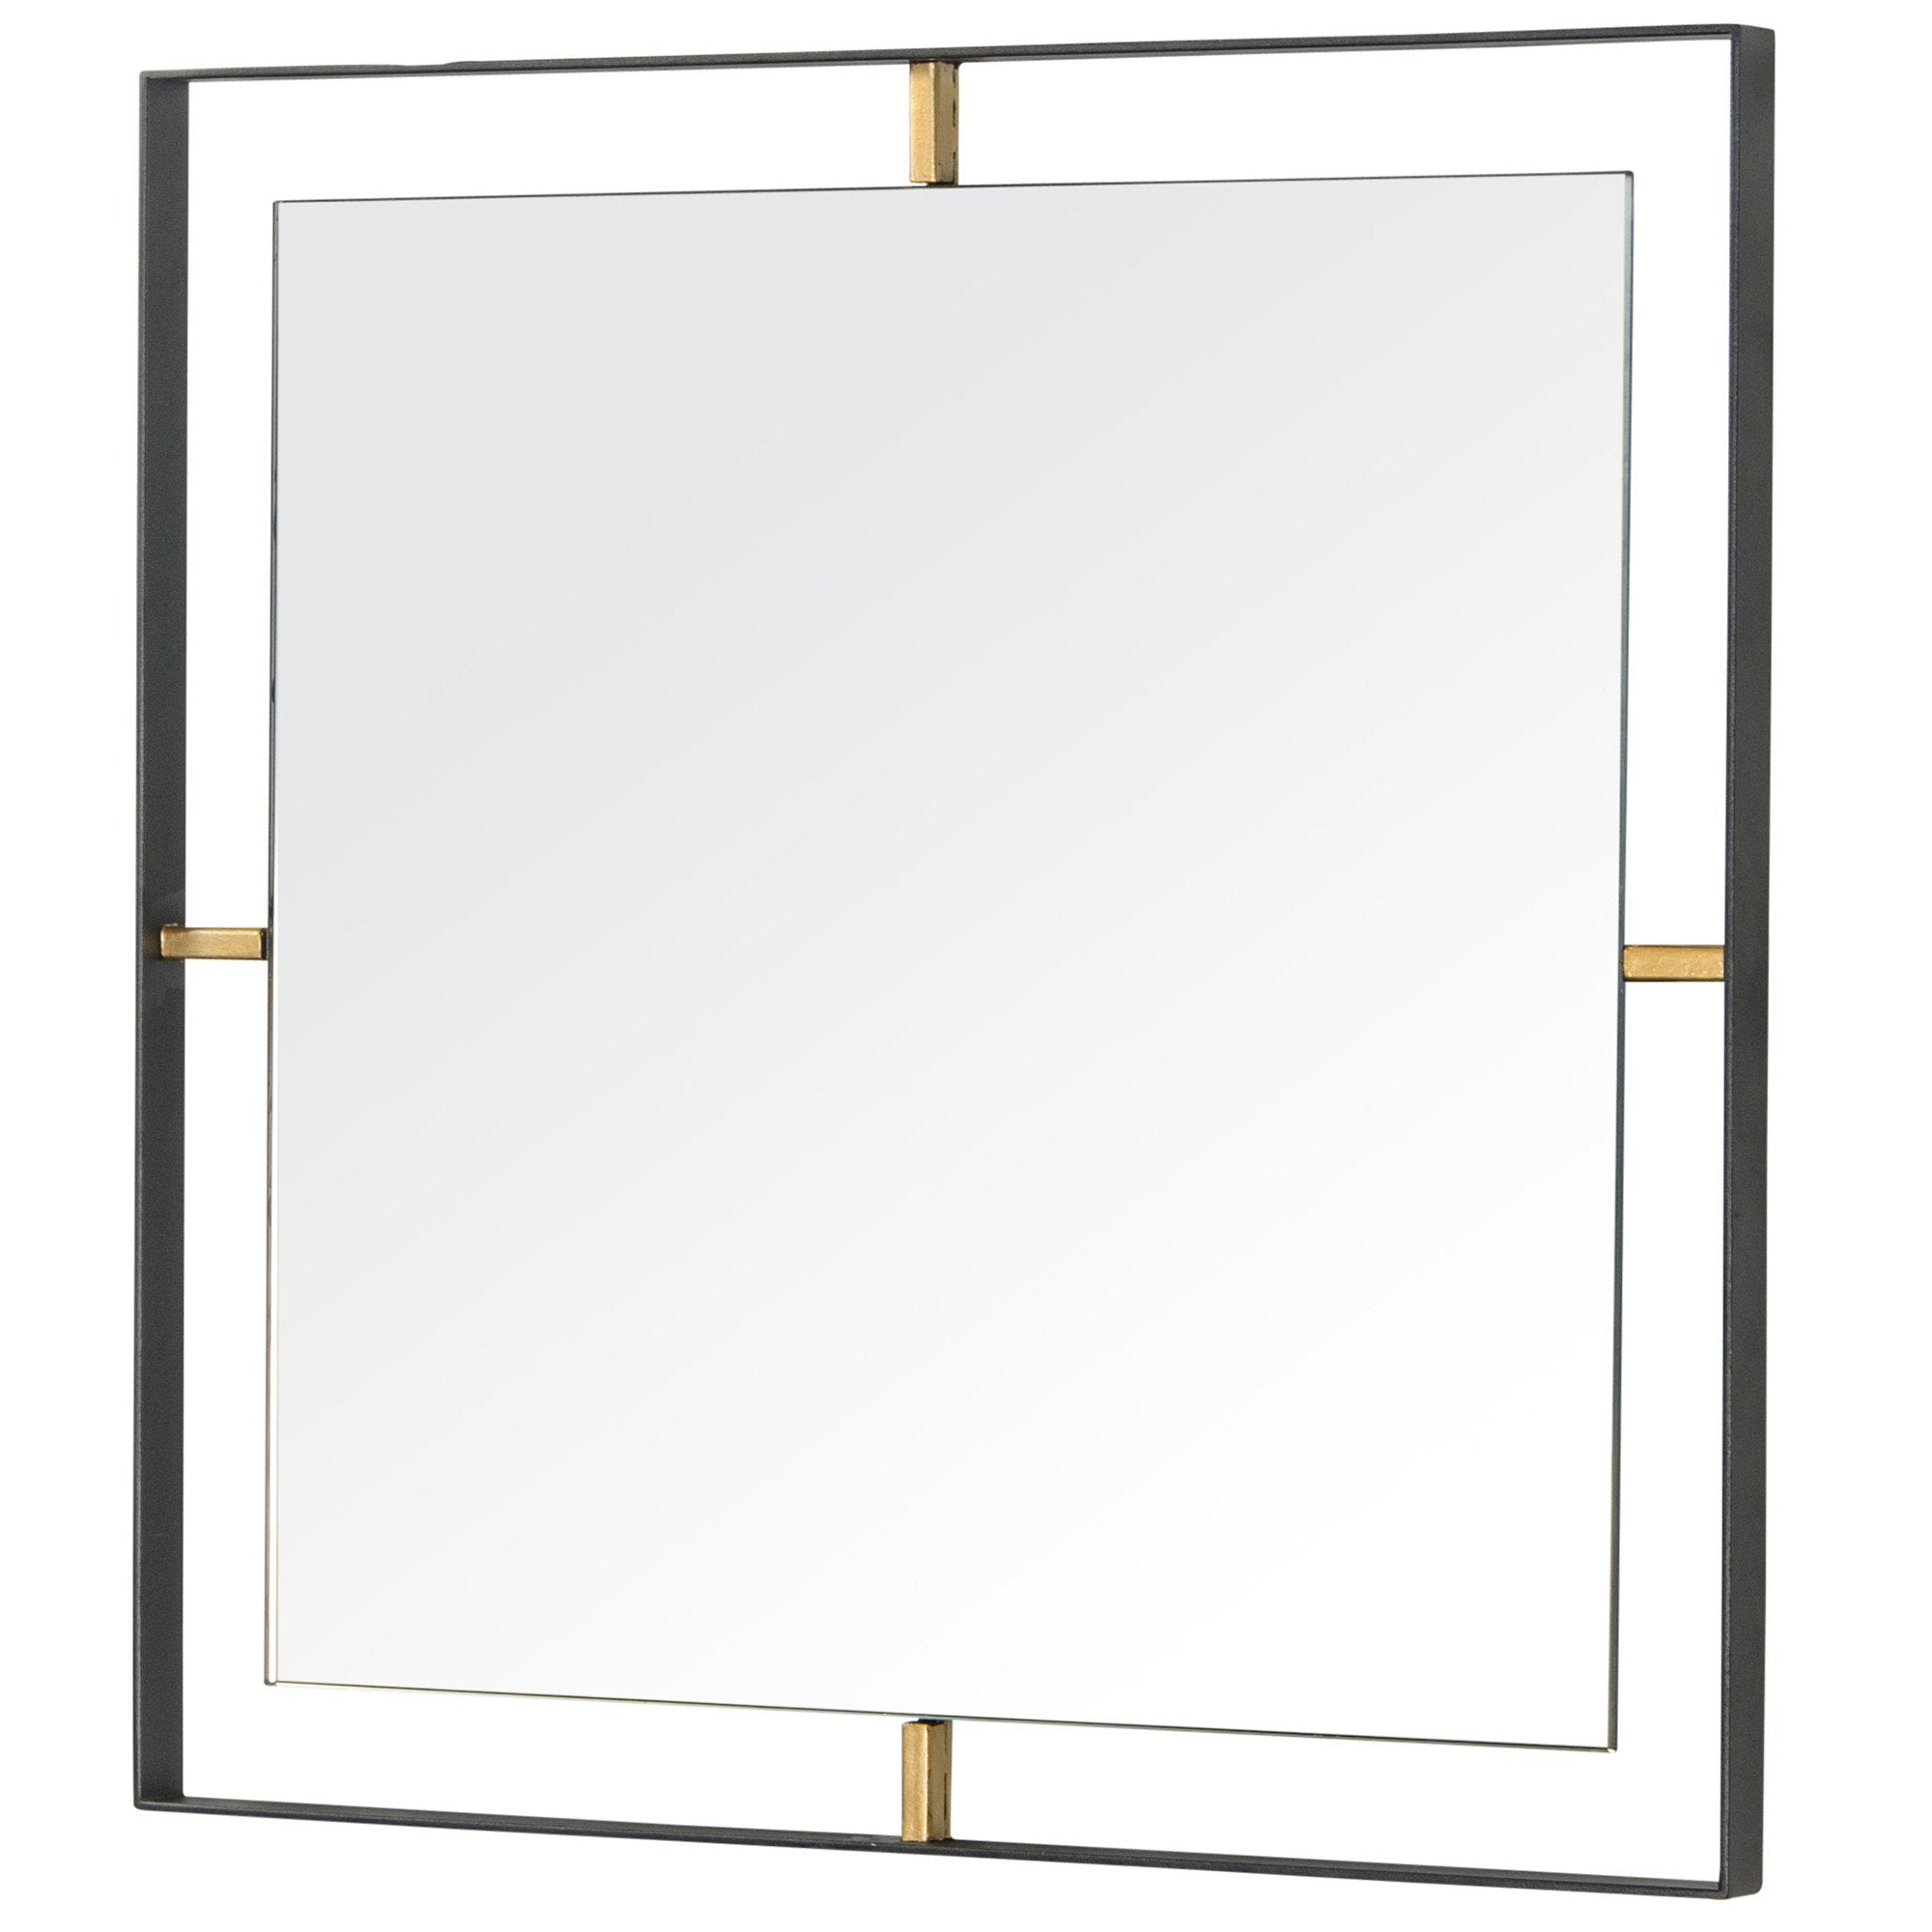 Framed 610020 20x20-In Square Wall Mirror -Black w/ Antique Gold